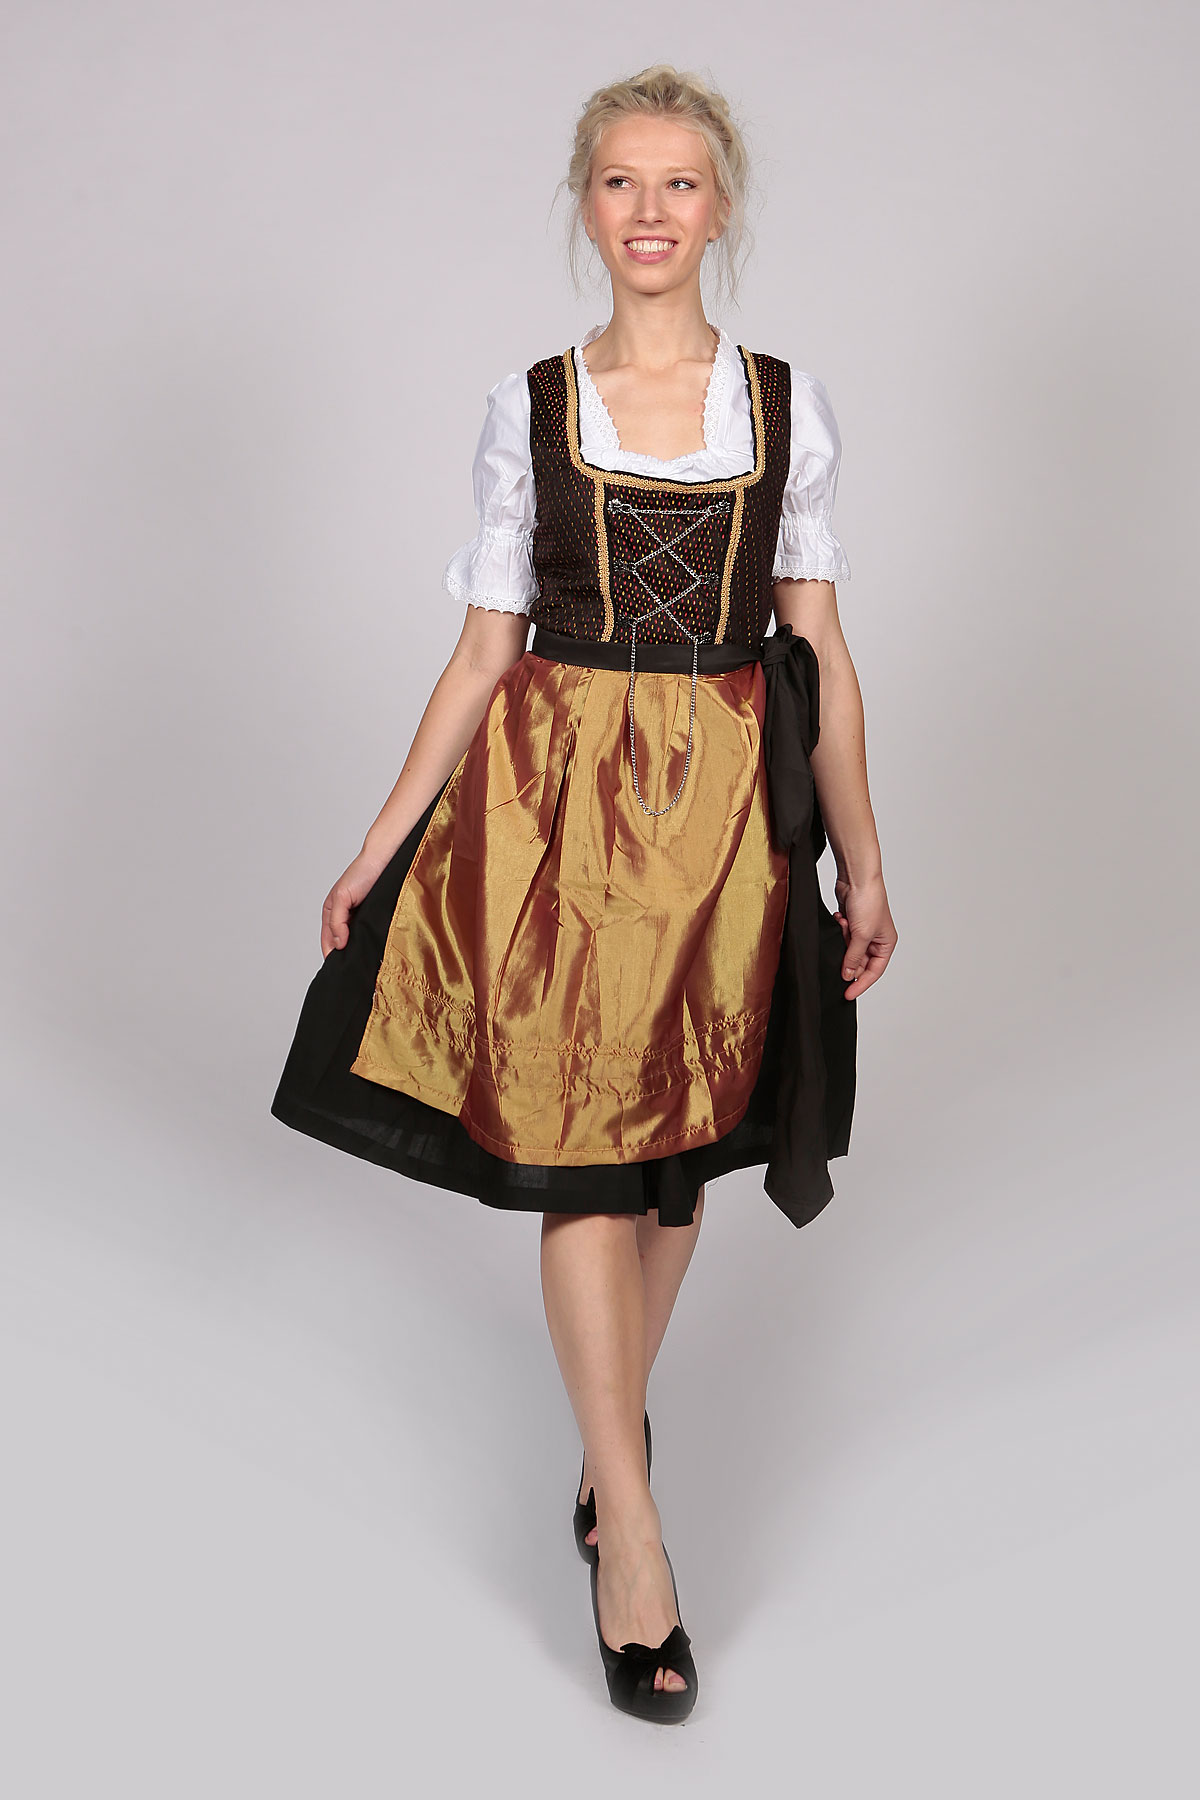 Vintage Amara Midi Dirndl Dress Black Gold - Lederhosen Store